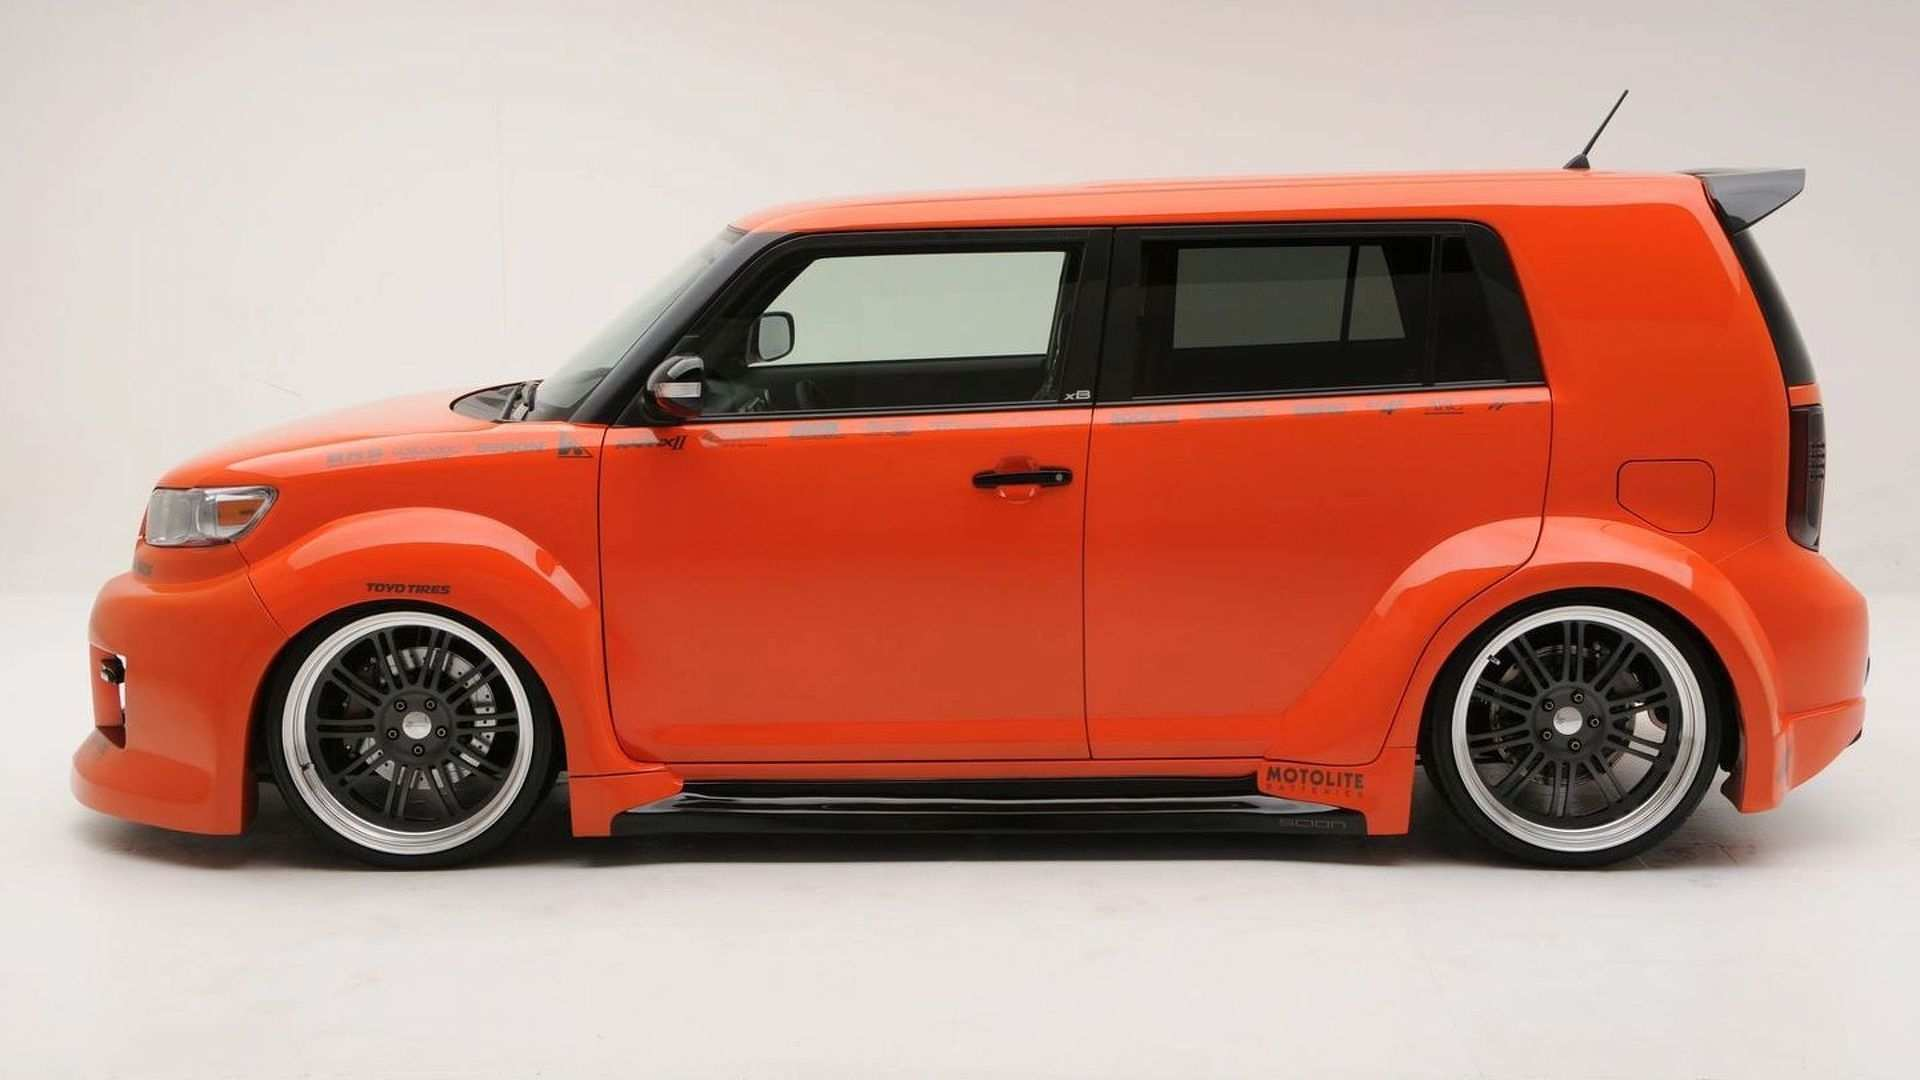 53 New 2019 Scion Xb Release Date Performance and New Engine for 2019 Scion Xb Release Date